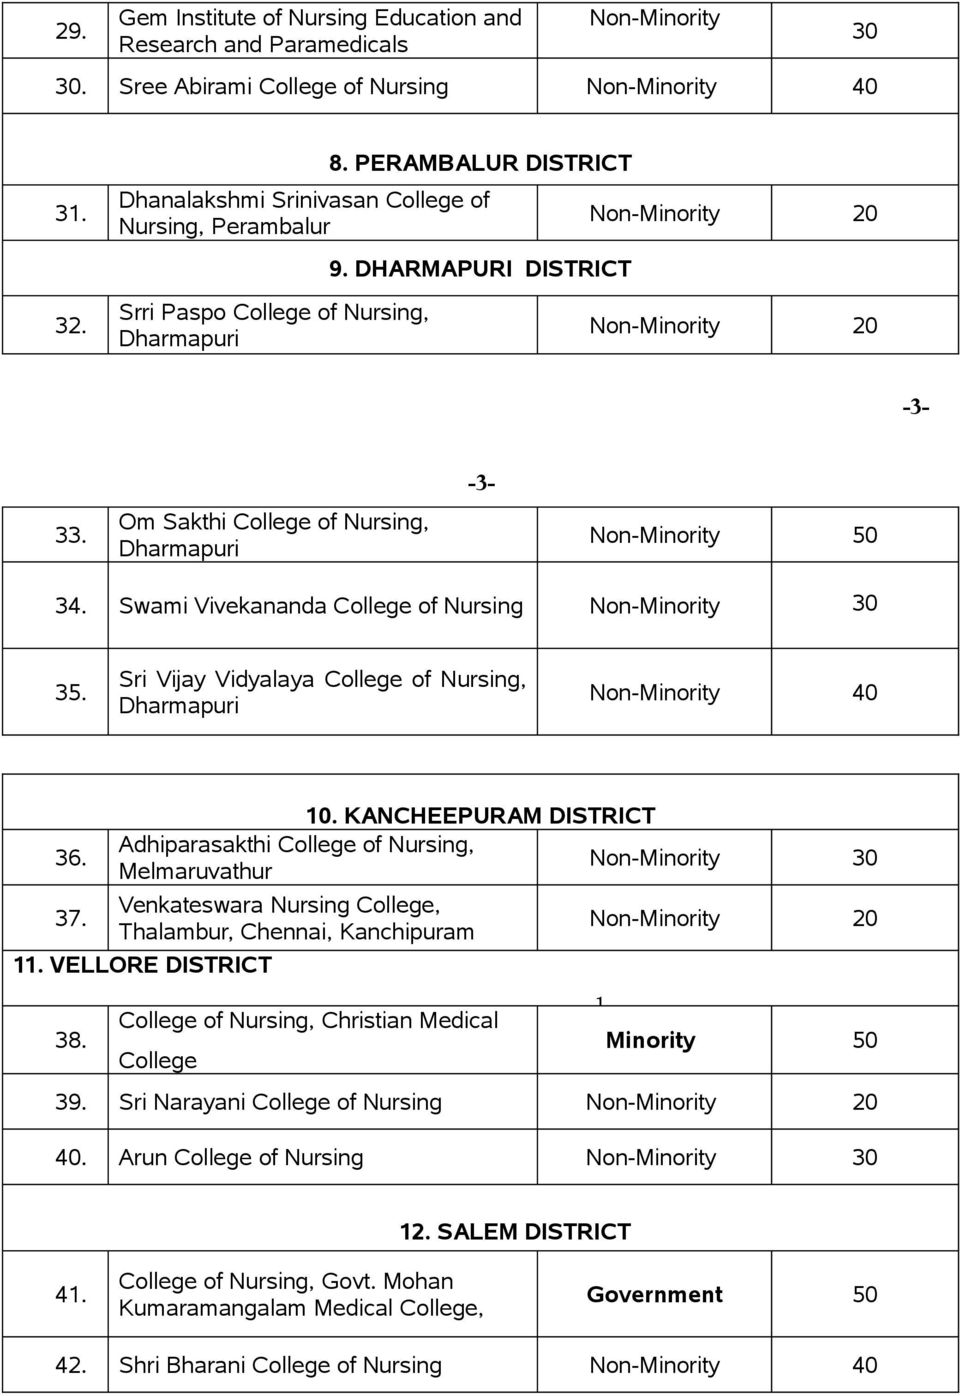 Om Sakthi College of Nursing, Dharmapuri -3- -3-34. Swami Vivekananda College of Nursing 30 35. Sri Vijay Vidyalaya College of Nursing, Dharmapuri 36. 37. 10.